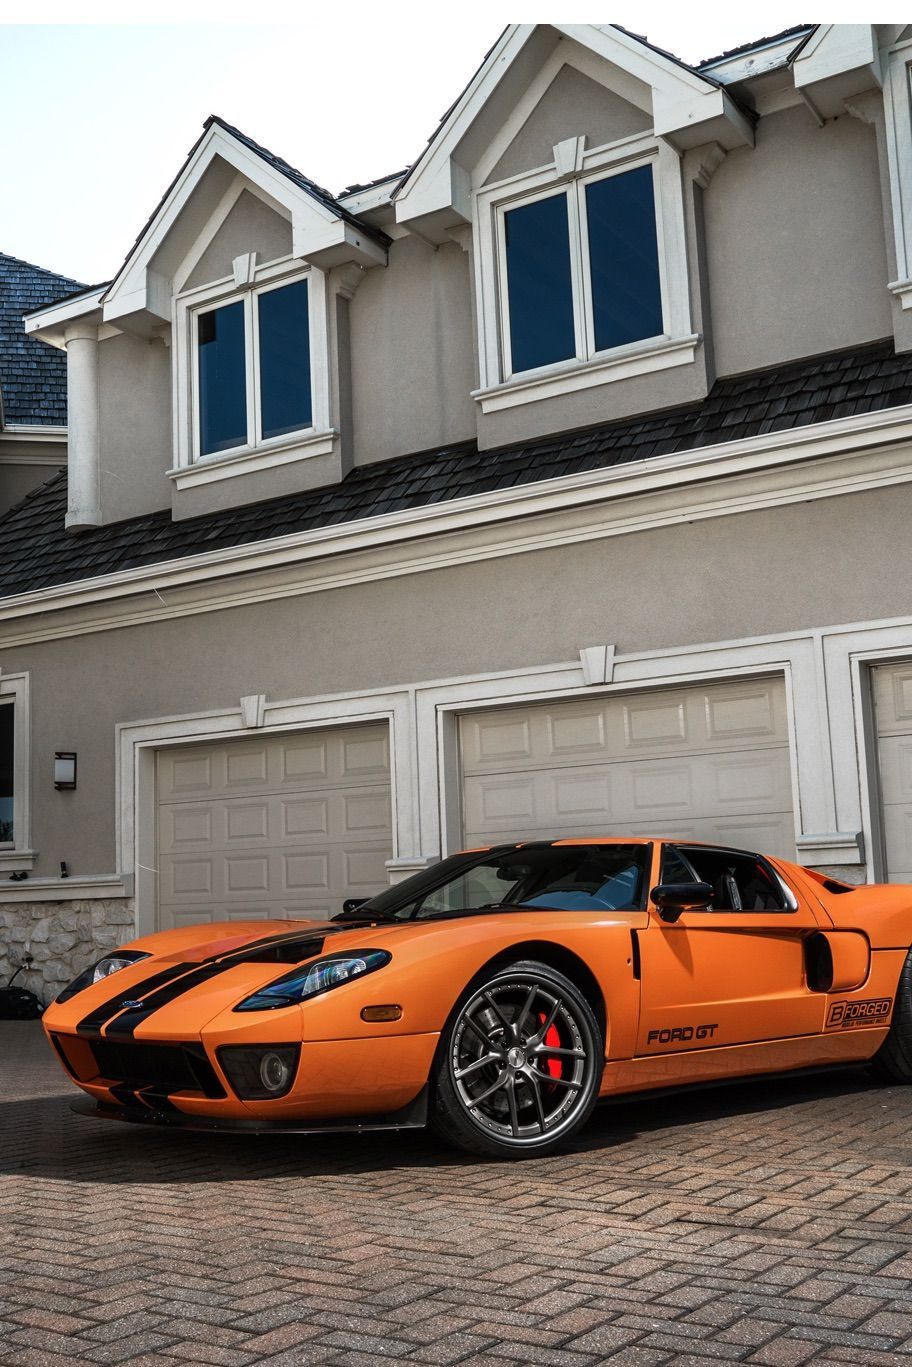 Ford Gt Dont See It Free Video Car Crashes Https Www Facebook